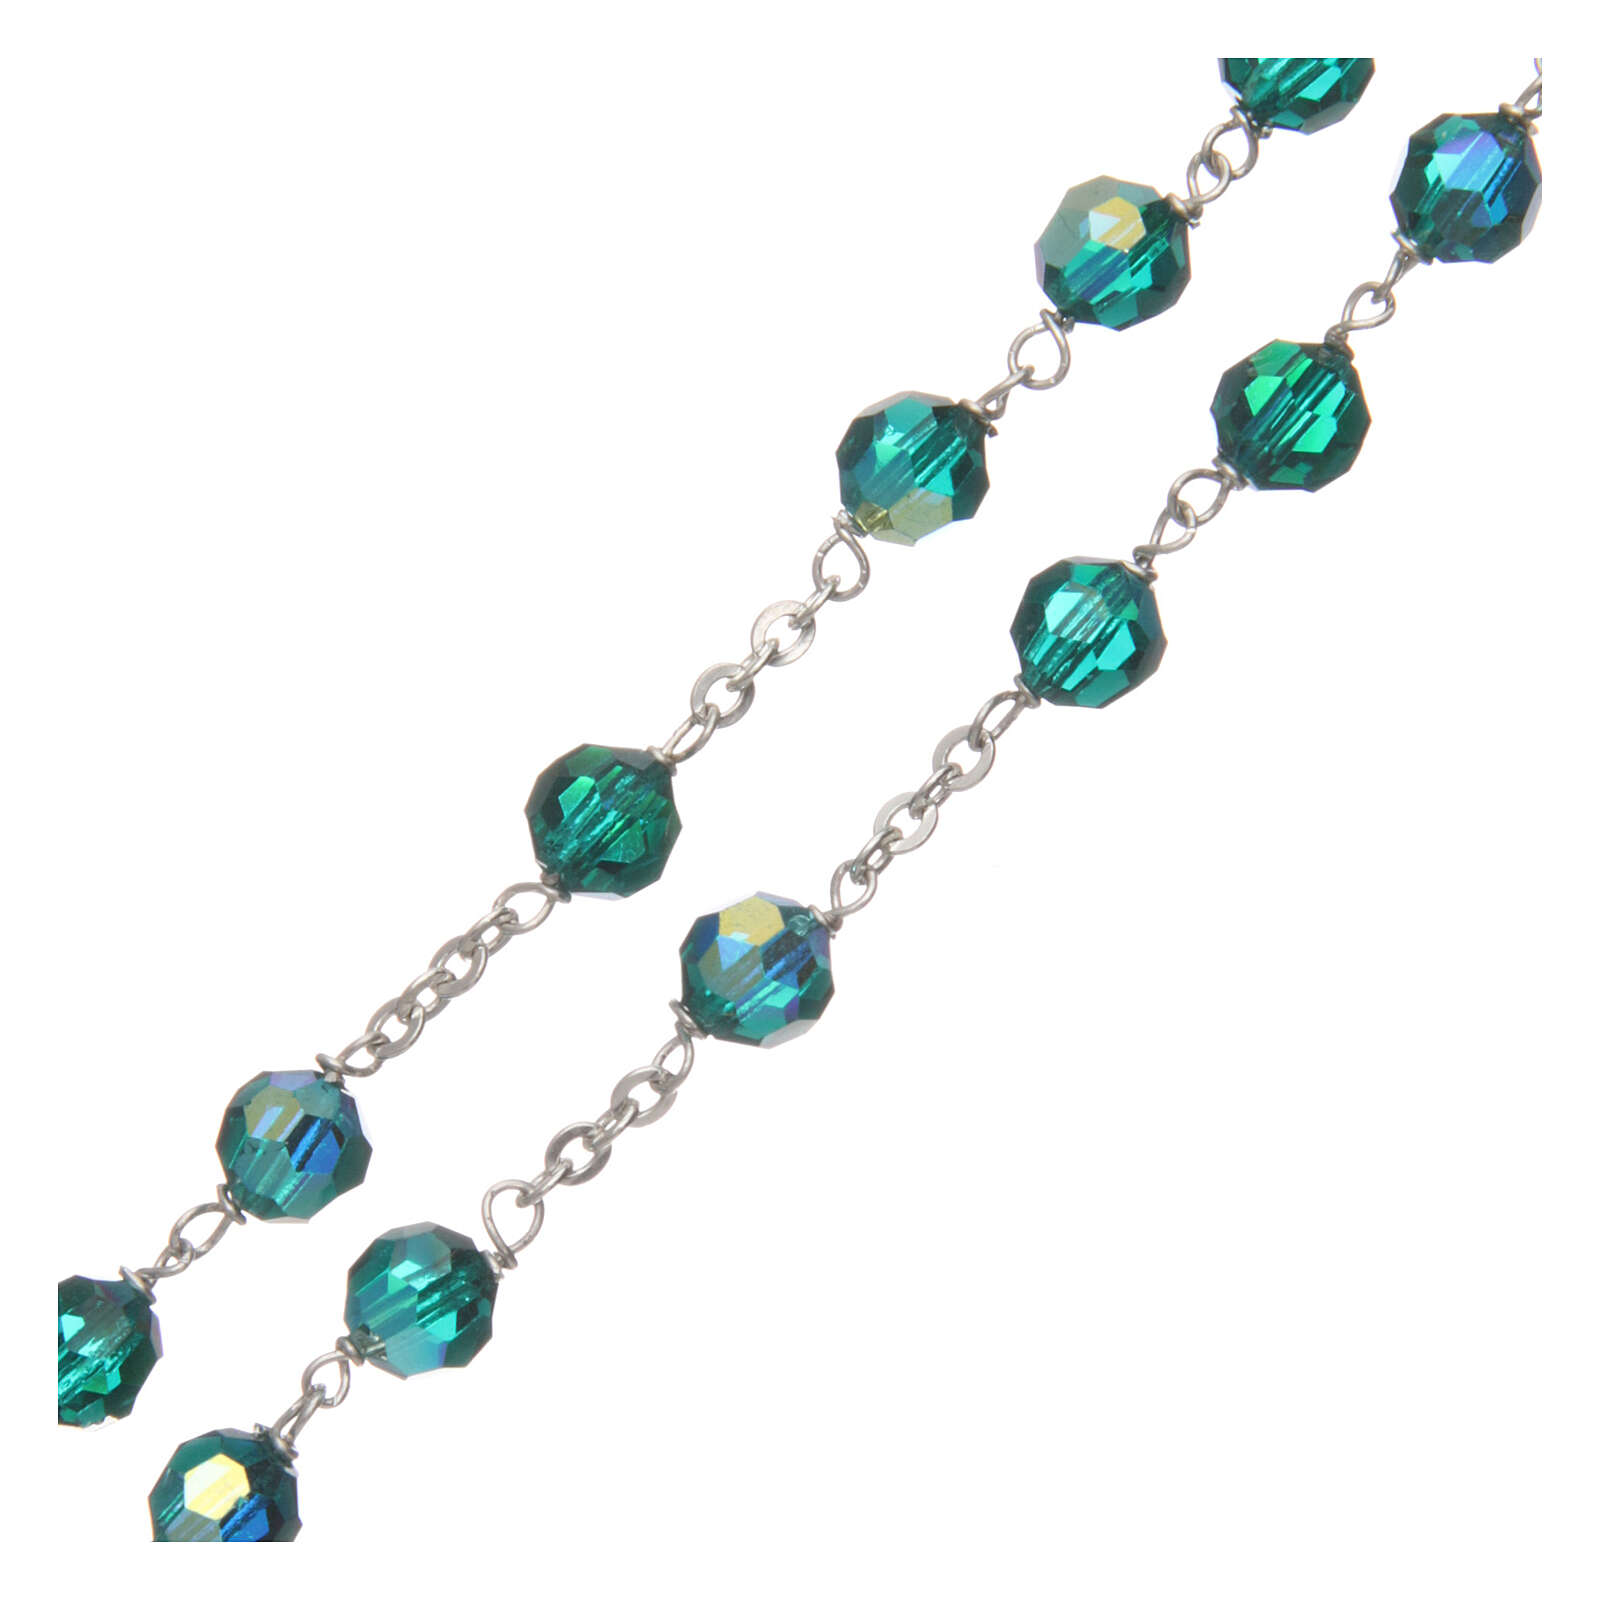 Crystal rosary green faceted beads 6 mm 925 silver chain 4